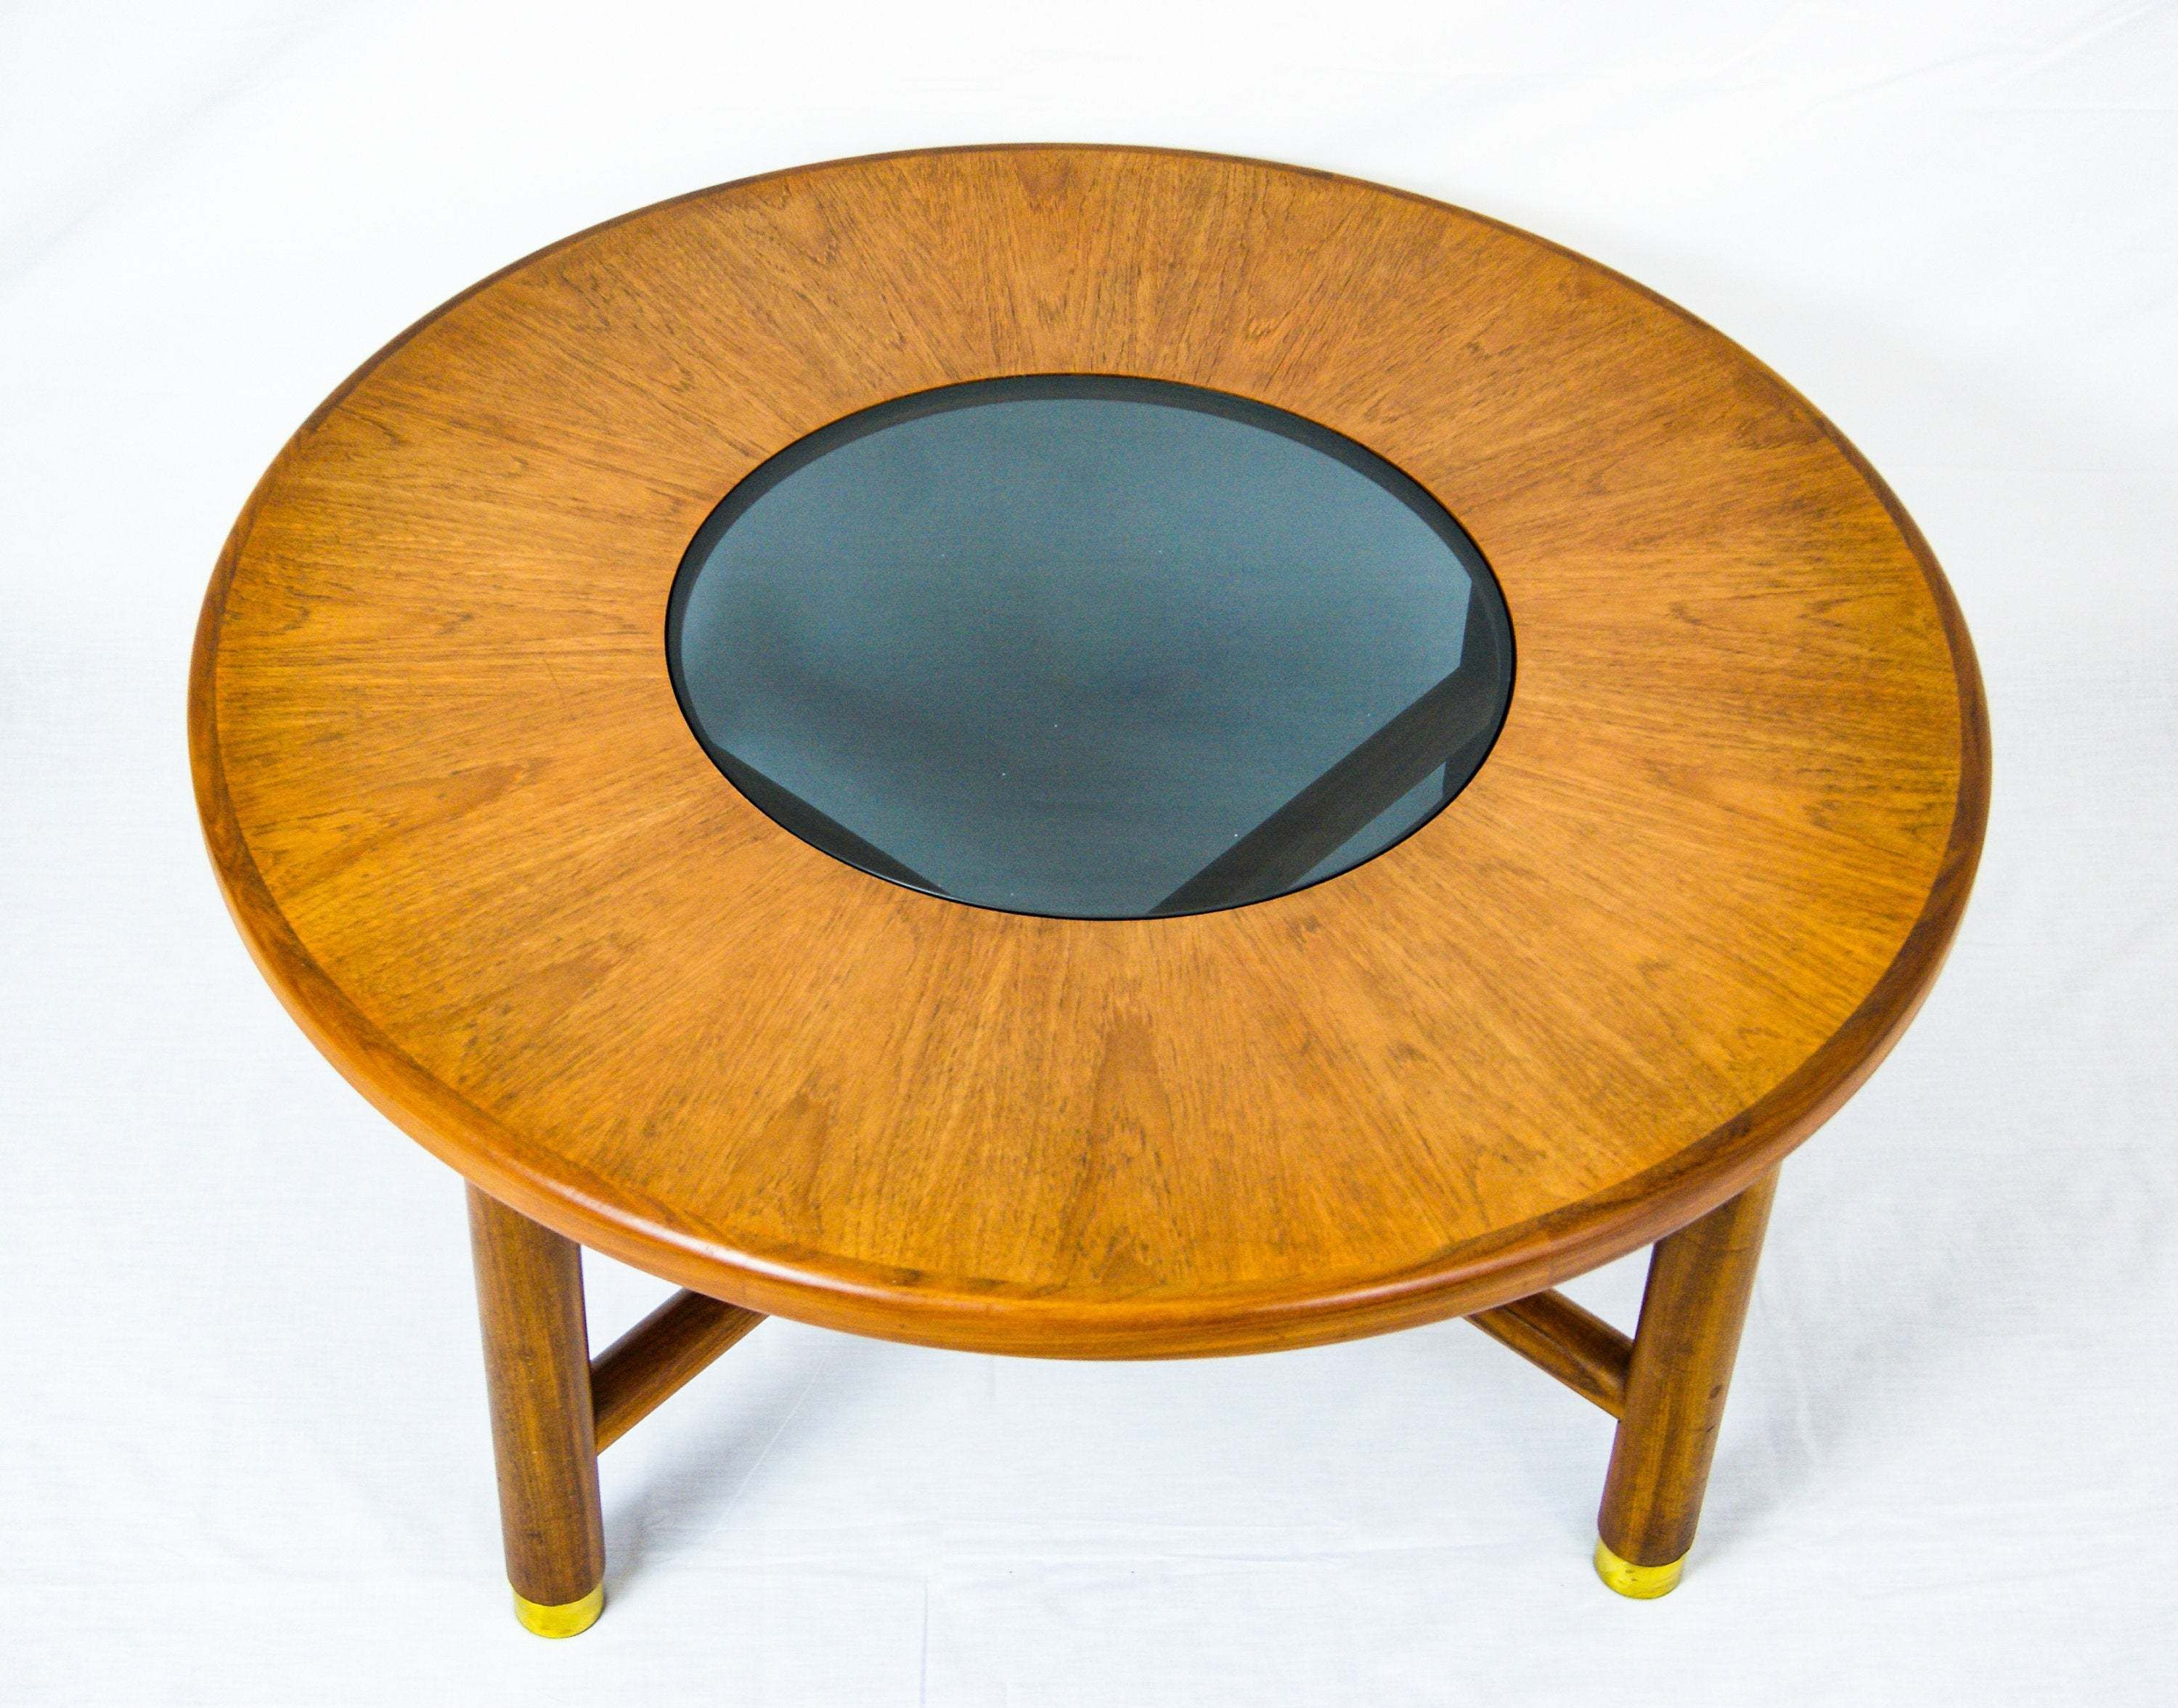 G Plan Teak Wood Round Coffee Table With Smoked Glass Top And Brass Feet Round Wood Coffee Table Round Coffee Table Wood Rounds